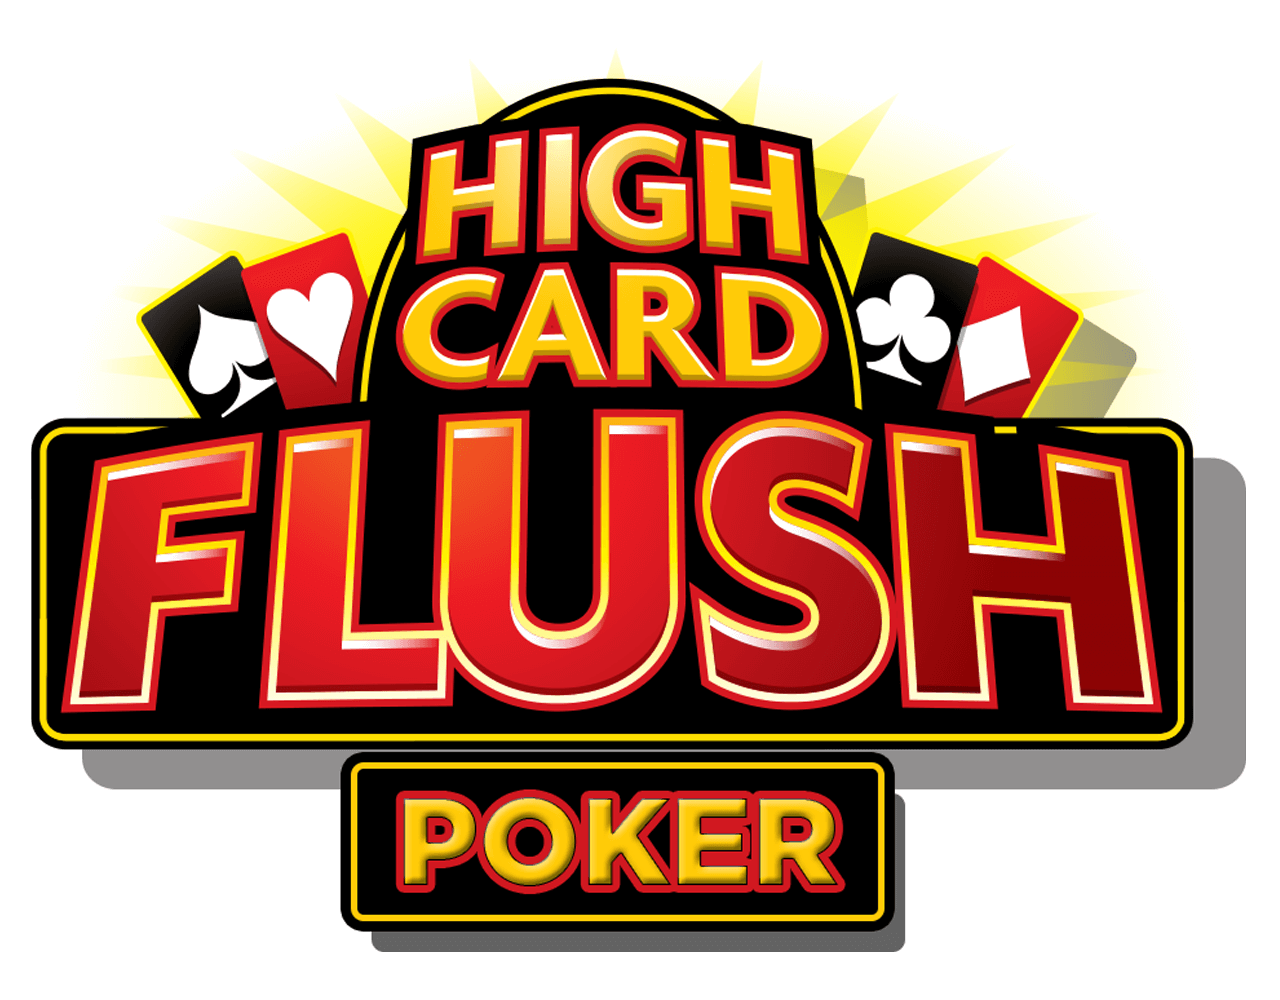 High Card Flush Poker Logo